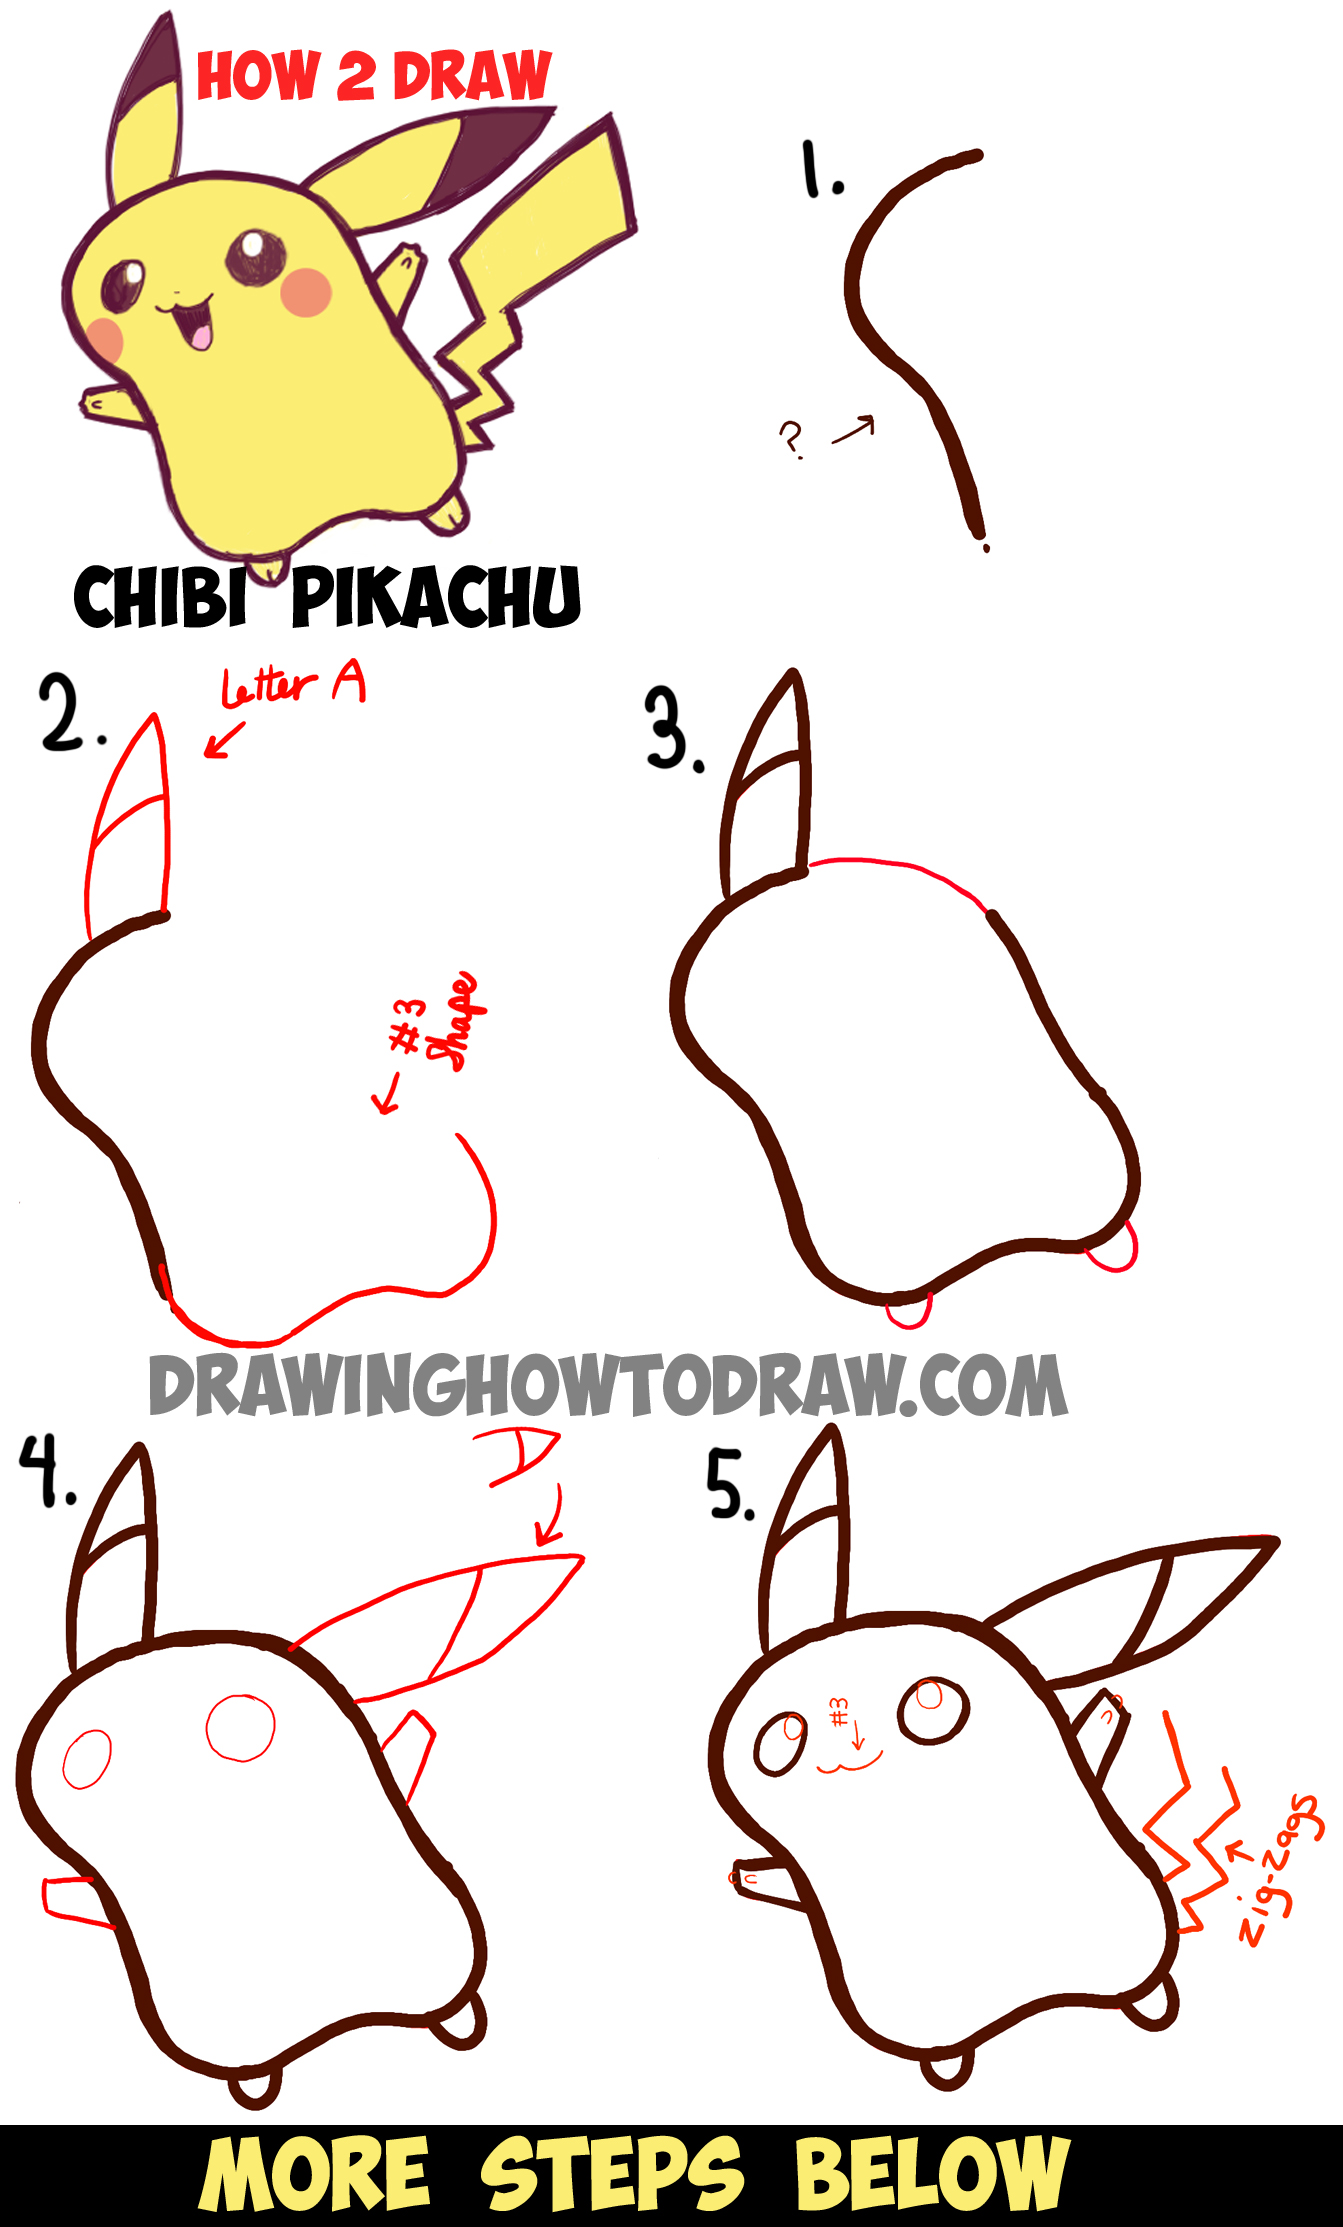 how to draw cute baby chibi pikachu from pokemon step by